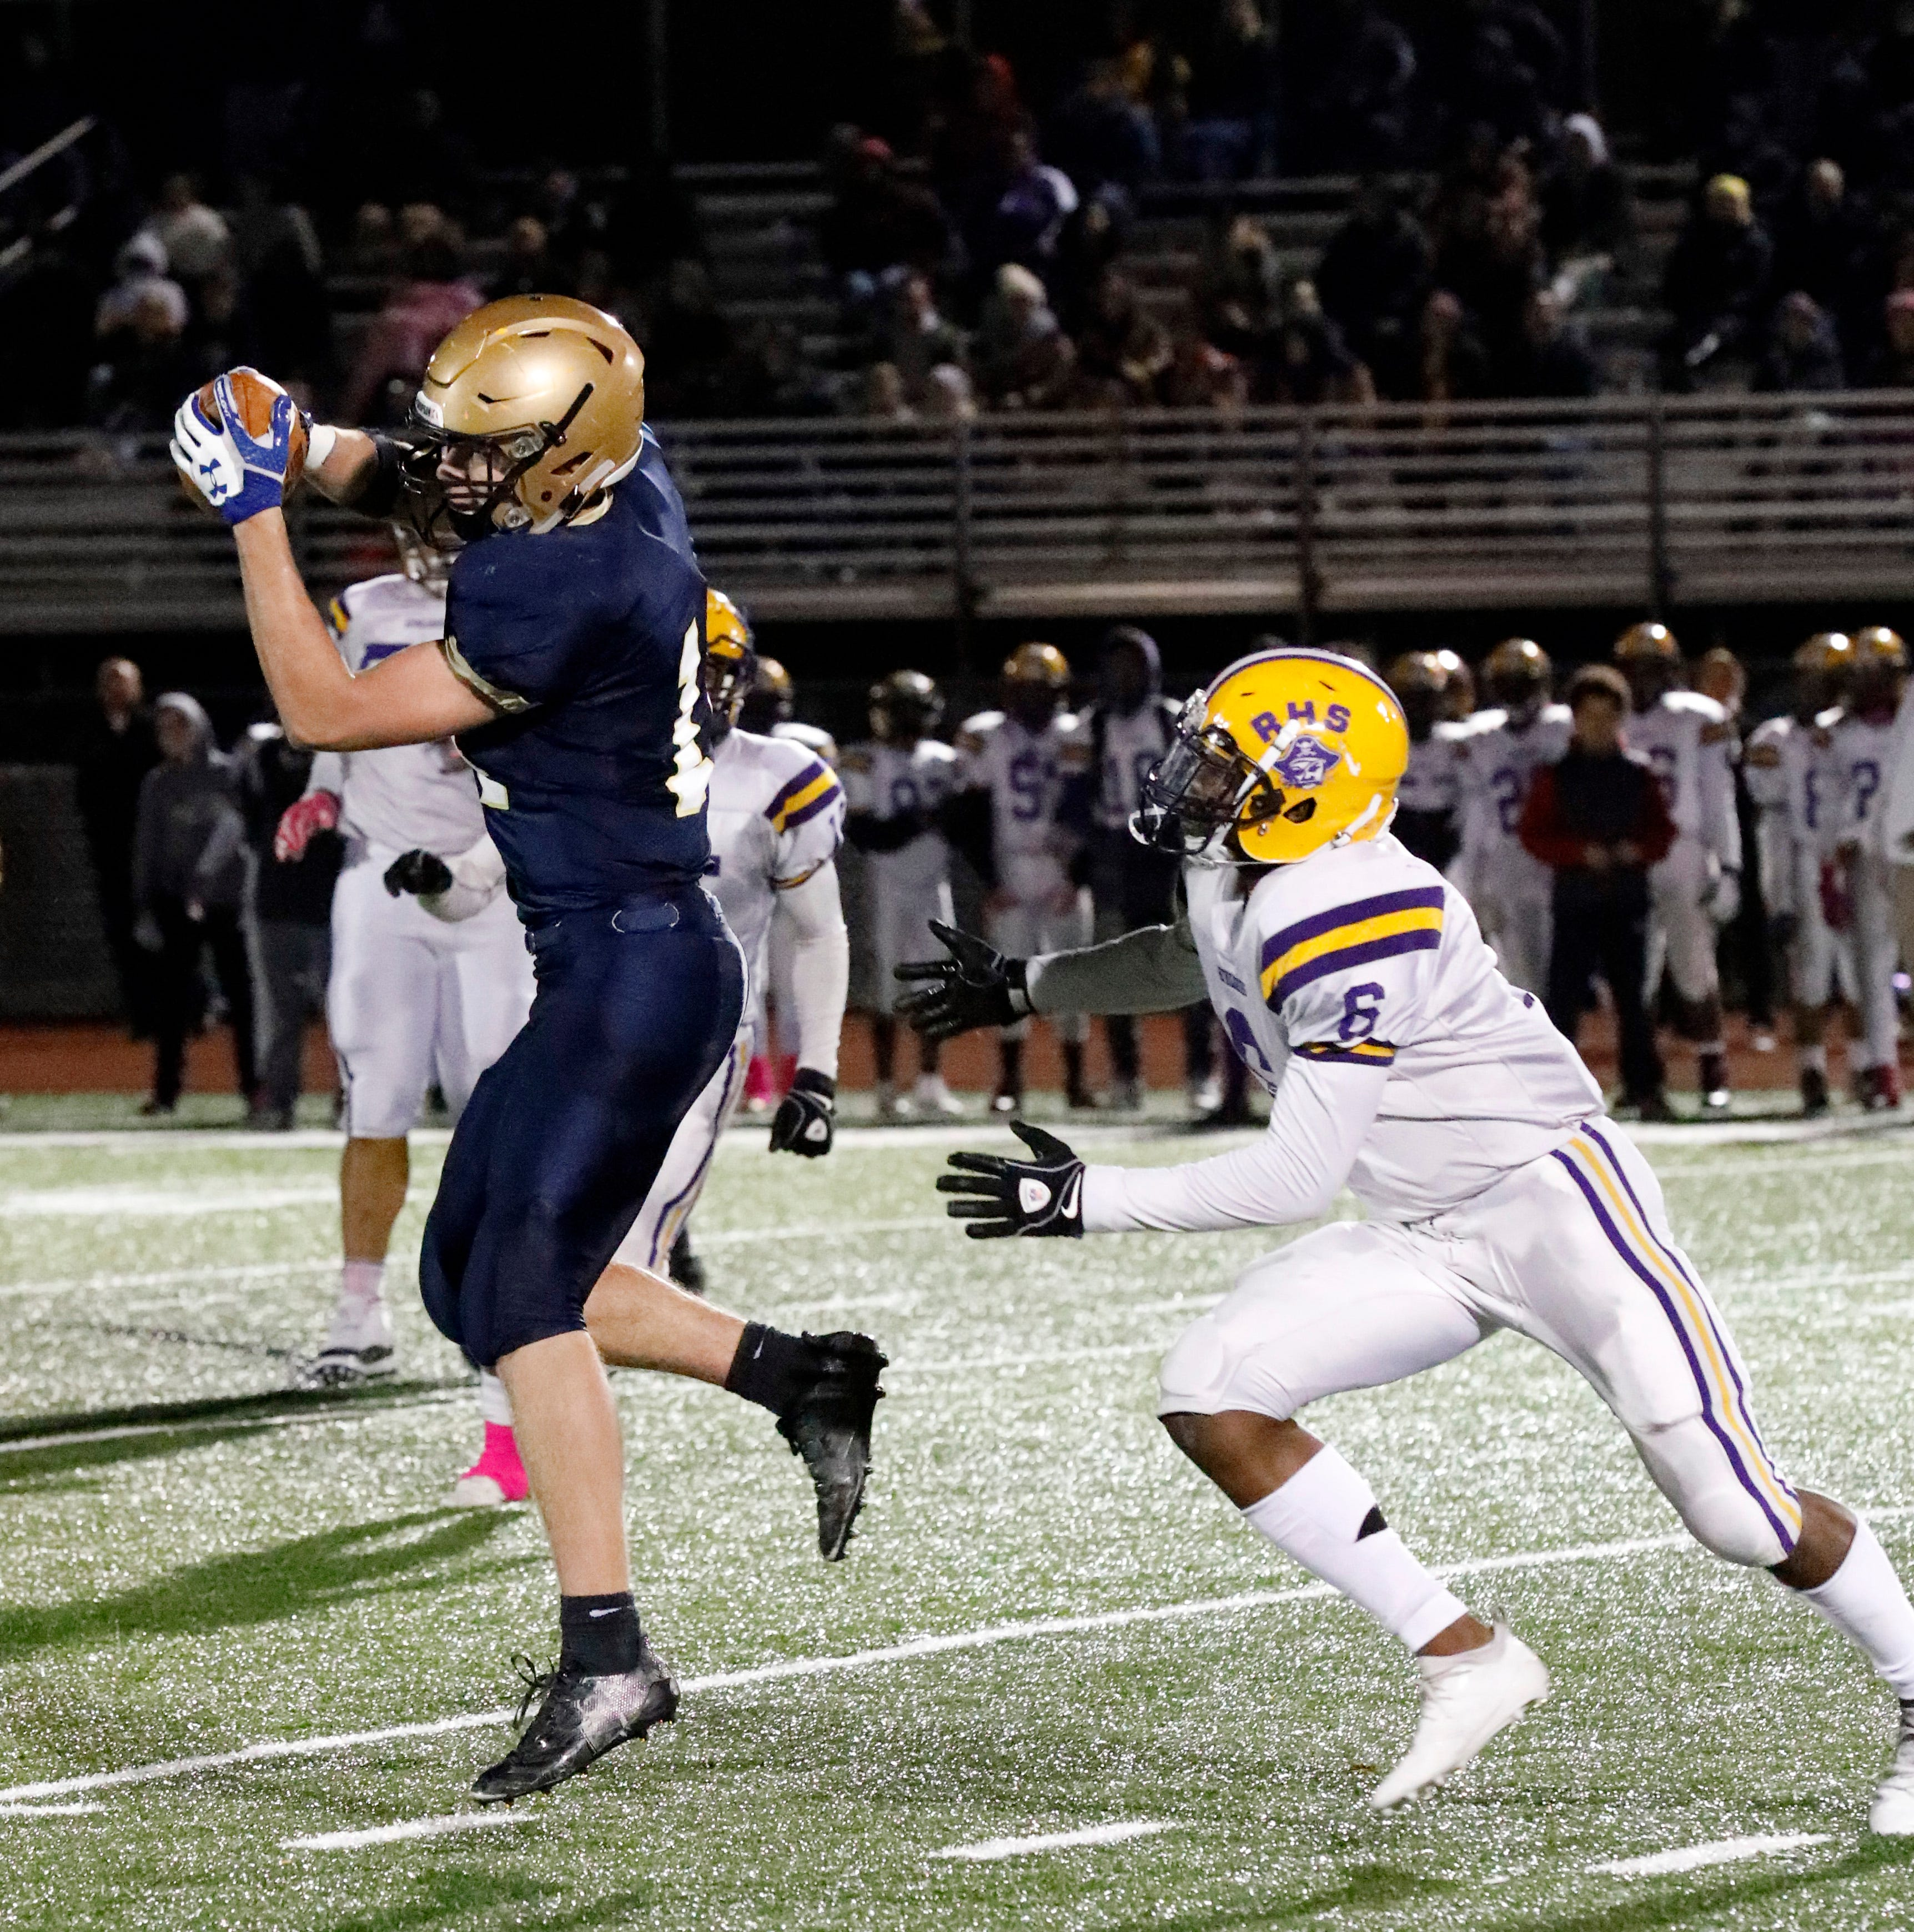 Eagle-Gazette Defensive Player of the Year: Lancaster's Young took advantage of his opportunity